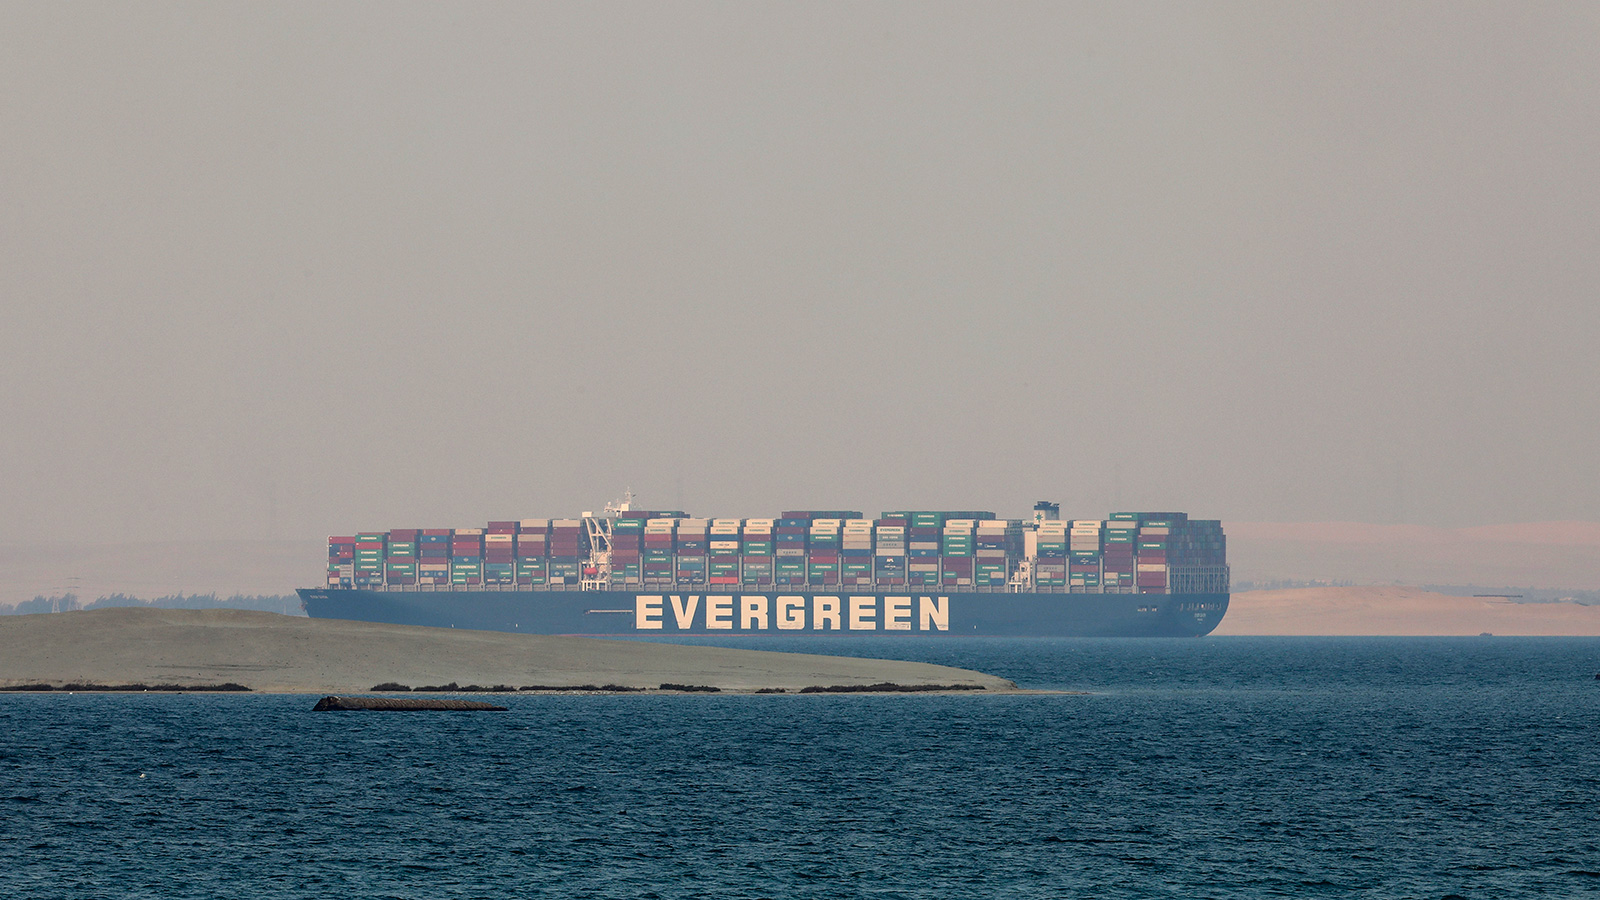 The Ever Given could soon be released by the Suez Canal